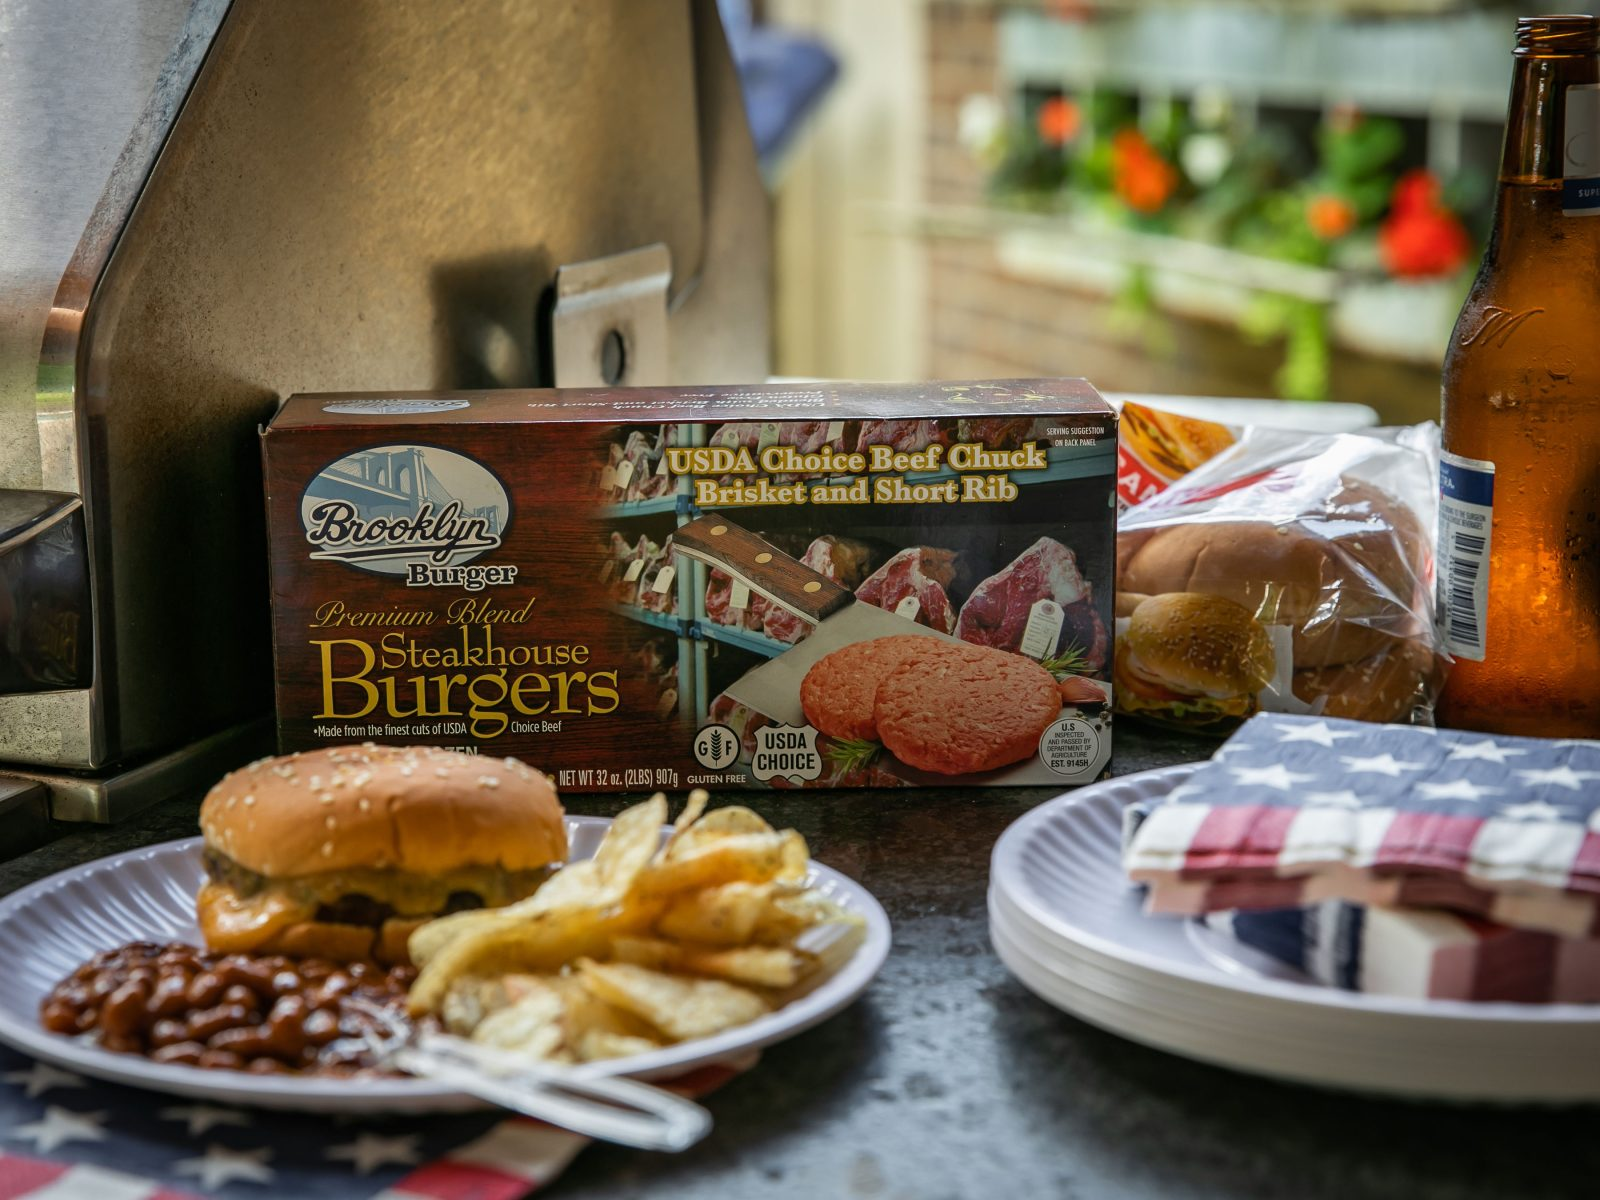 Pick Up Brooklyn Burgers Steakhouse Burgers For Your July 4th Celebration - Save Now At Publix on I Heart Publix